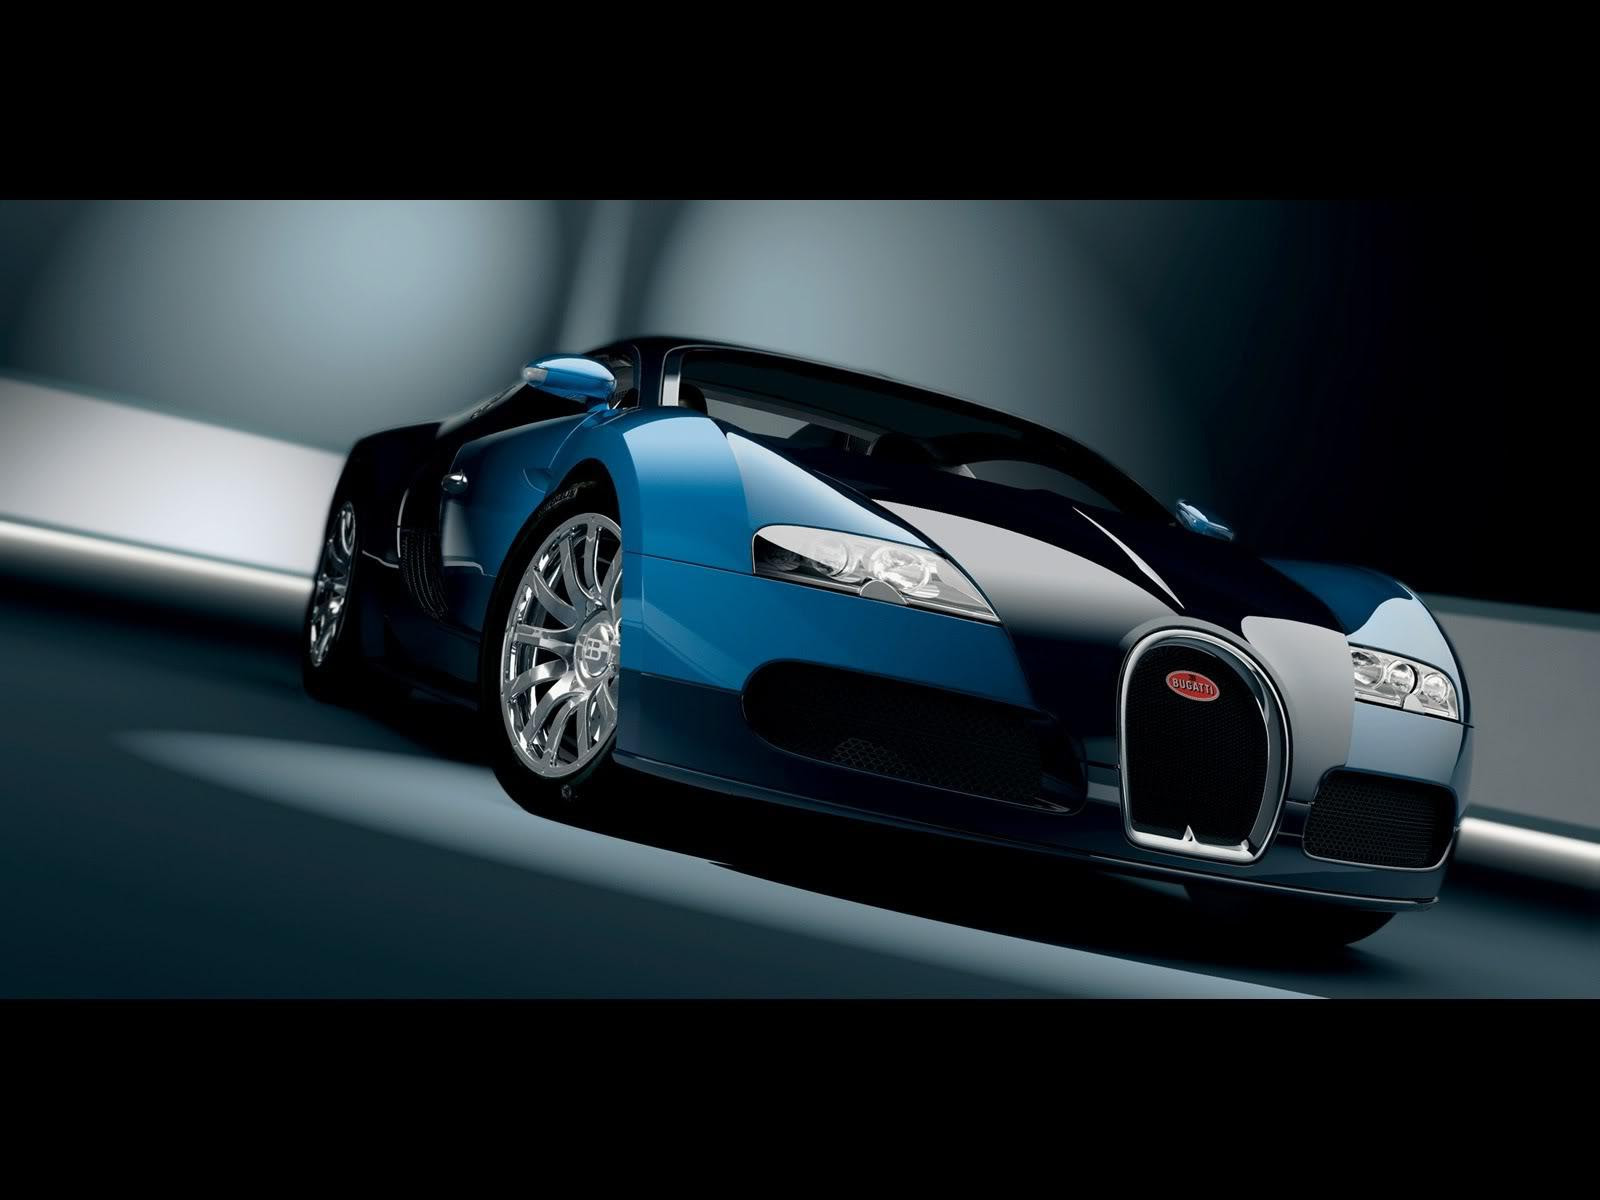 Cool Car Wallpapers For Desktop  WallpaperSafari